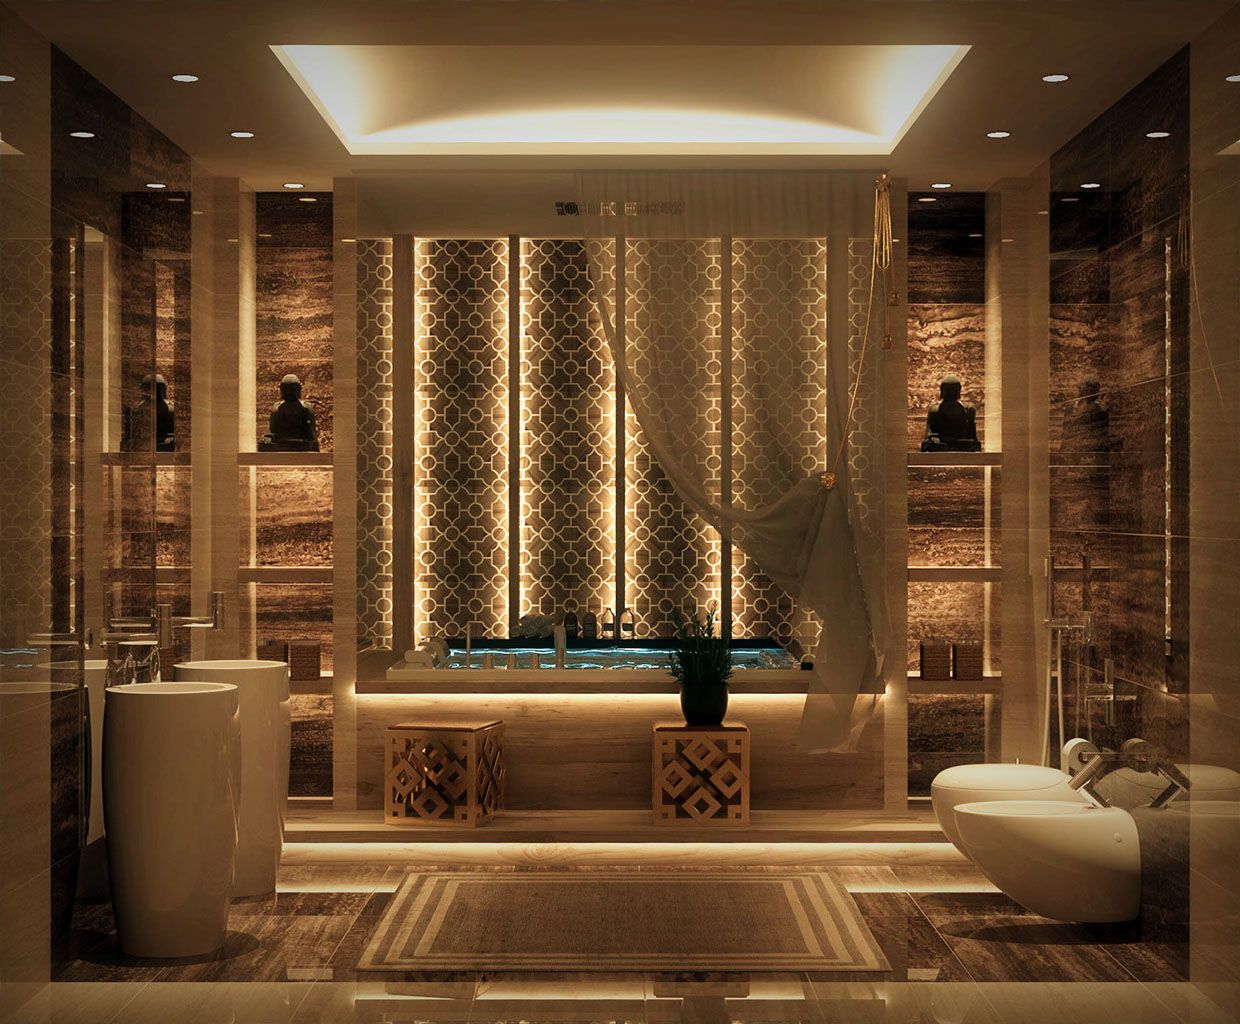 Luxurious bathrooms with stunning design details for Pure home designs